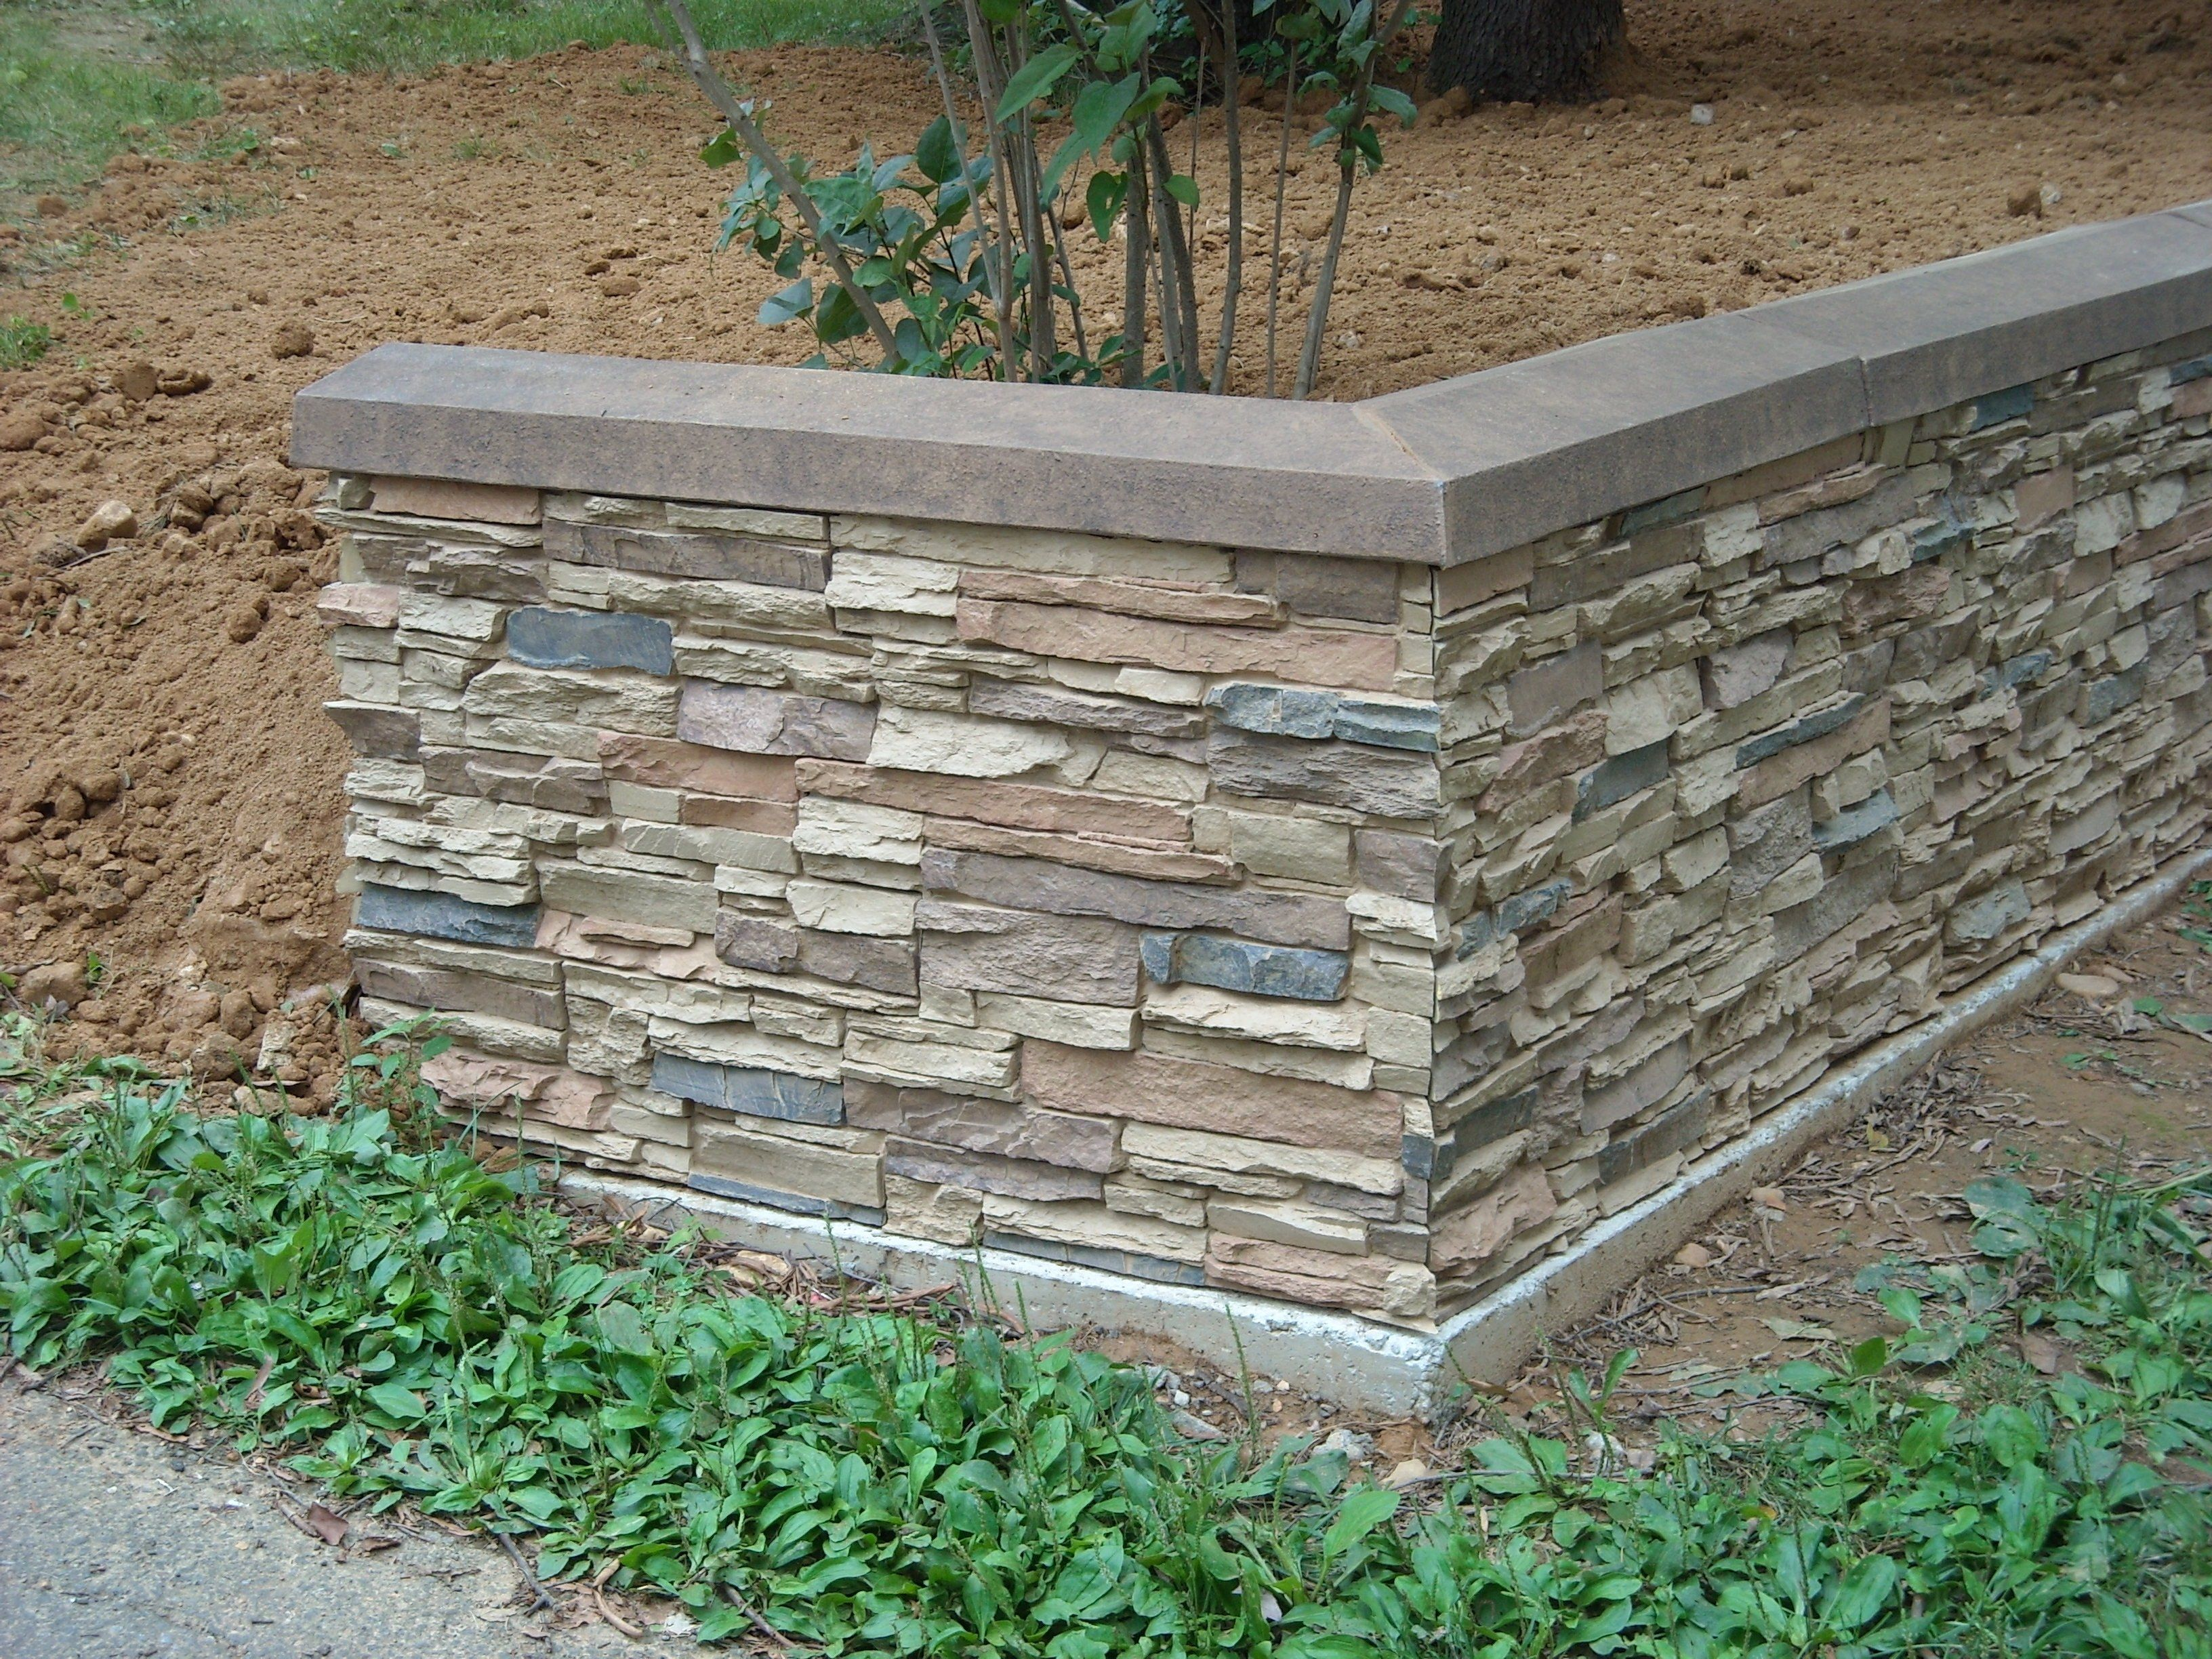 Image Of House Underpinning Ideas Faux Stone Or Rock Veneer Panels Are Pertaining To Fake Ro Landscaping Retaining Walls Stone Retaining Wall Faux Stone Walls